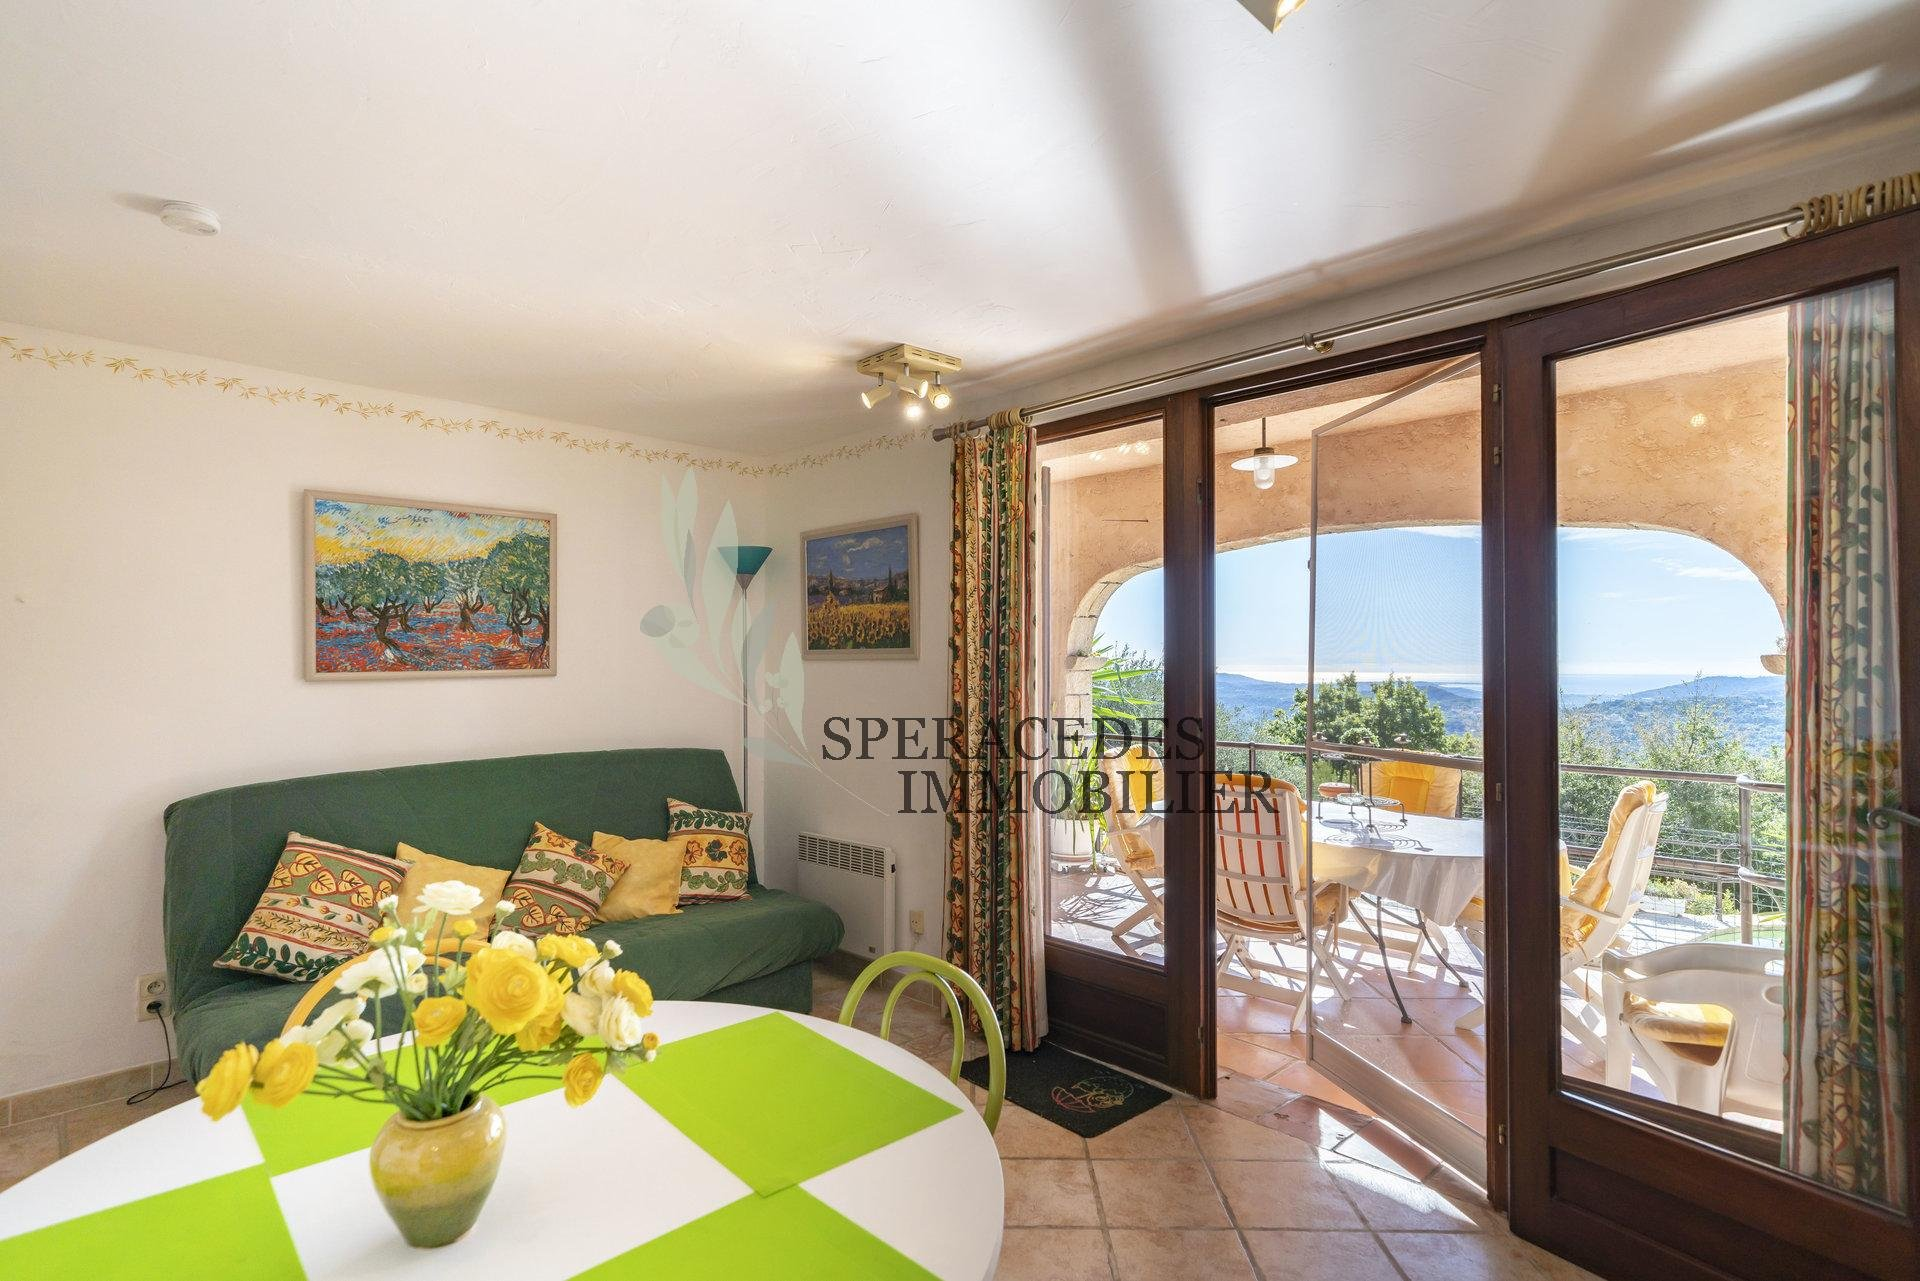 Speracedes – Lovely property – Panoramic view